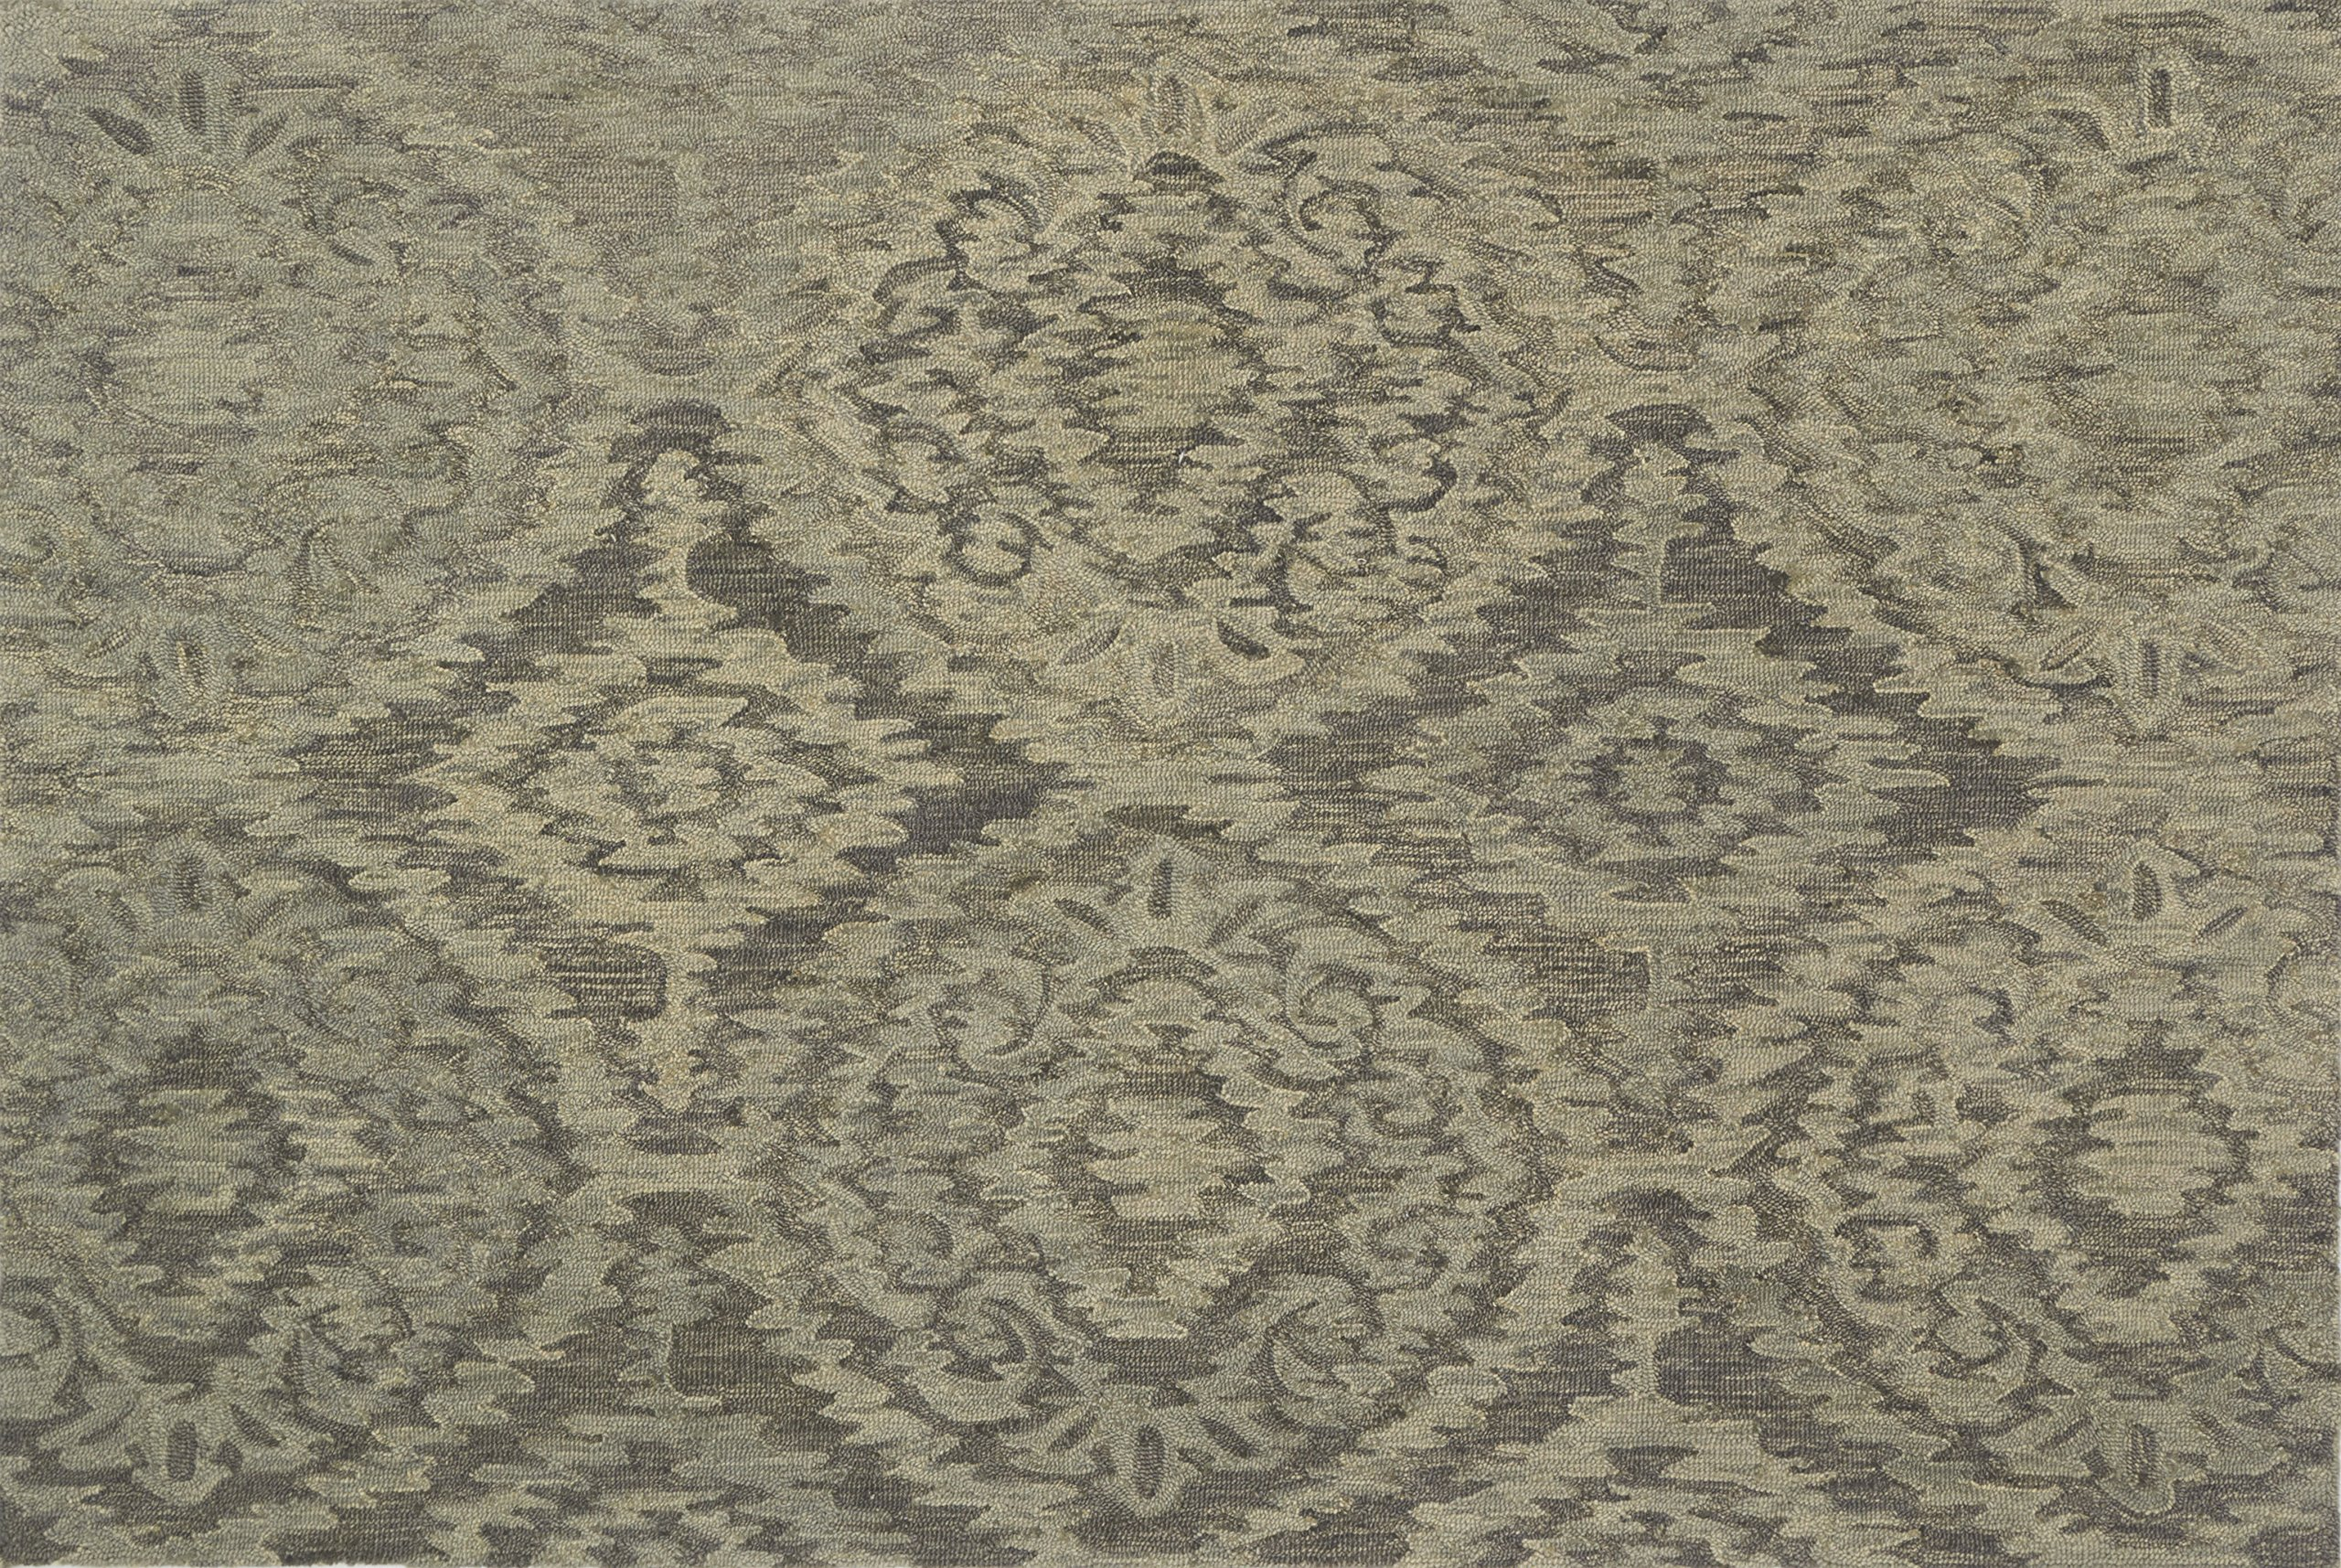 Loloi EVRSVX-01GY007999 Everson Collection Transitional Area Rug, 7'-9'' x 9'-9'', Grey